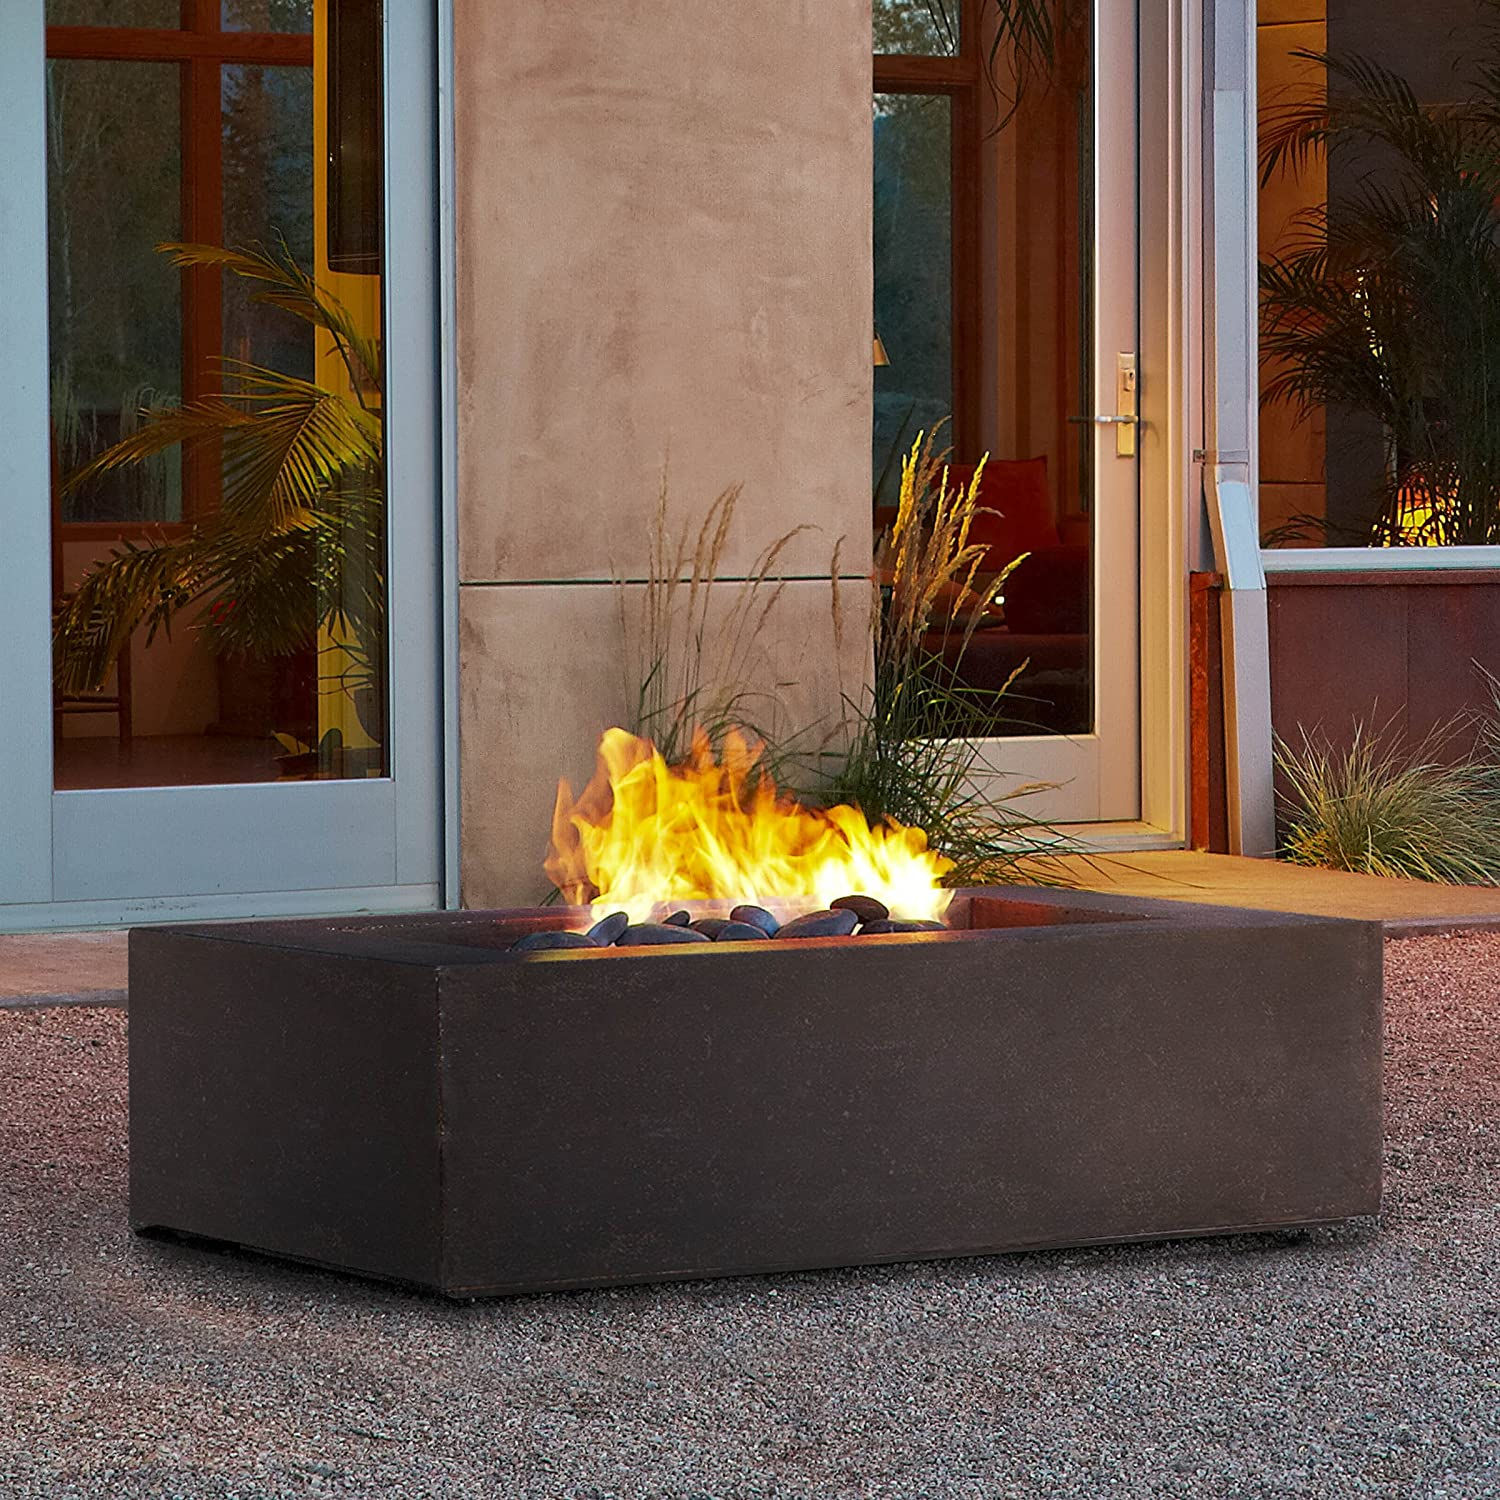 amazoncom t9650lp rectangle propane fire table kodiak brown patio lawn u0026 garden - Fire Tables